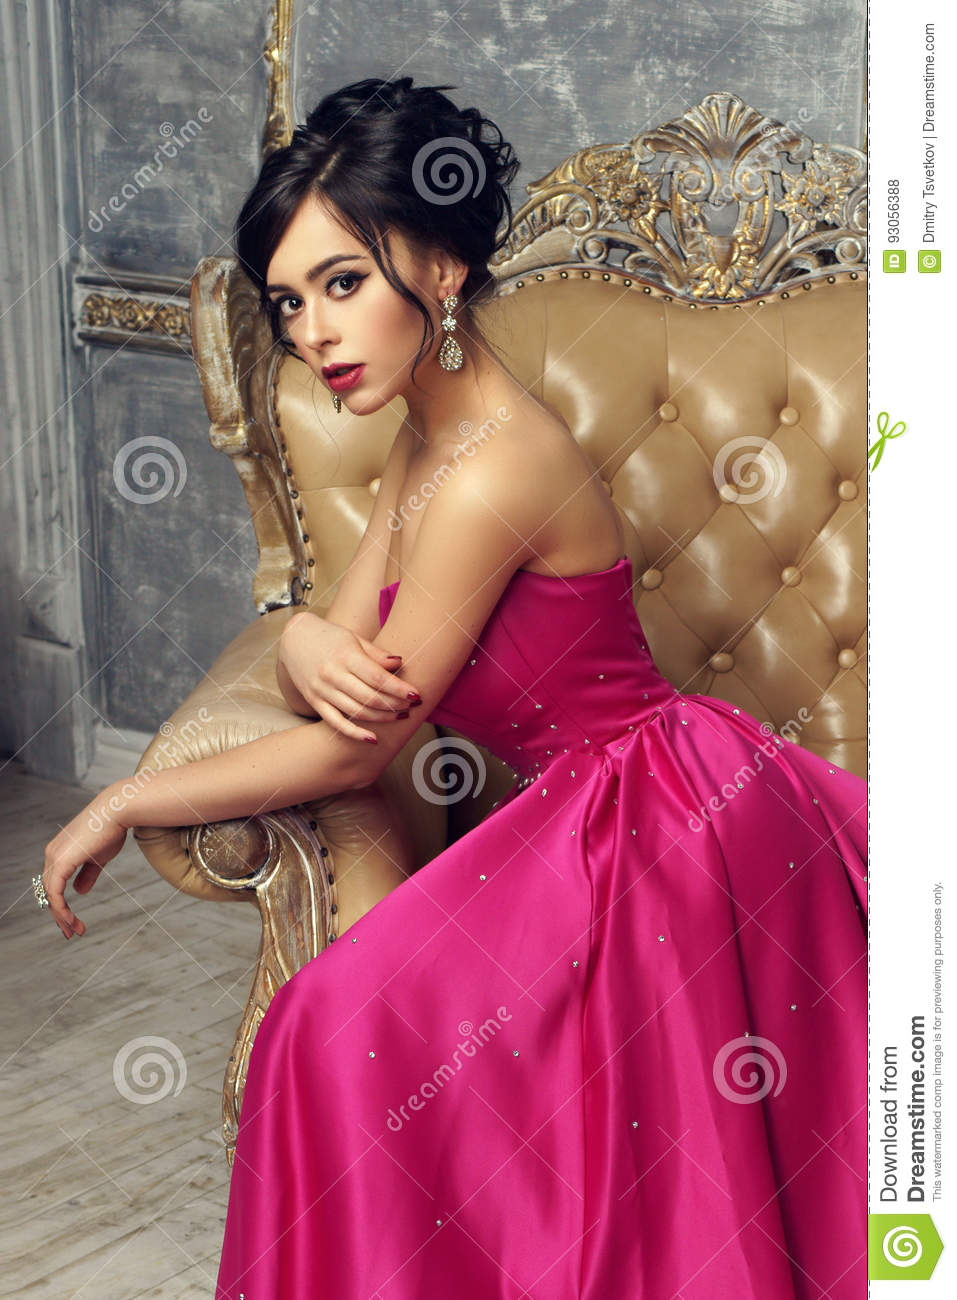 Elegant Lady Wearing Ball Gown Stock Photo Image Of Hairstyle